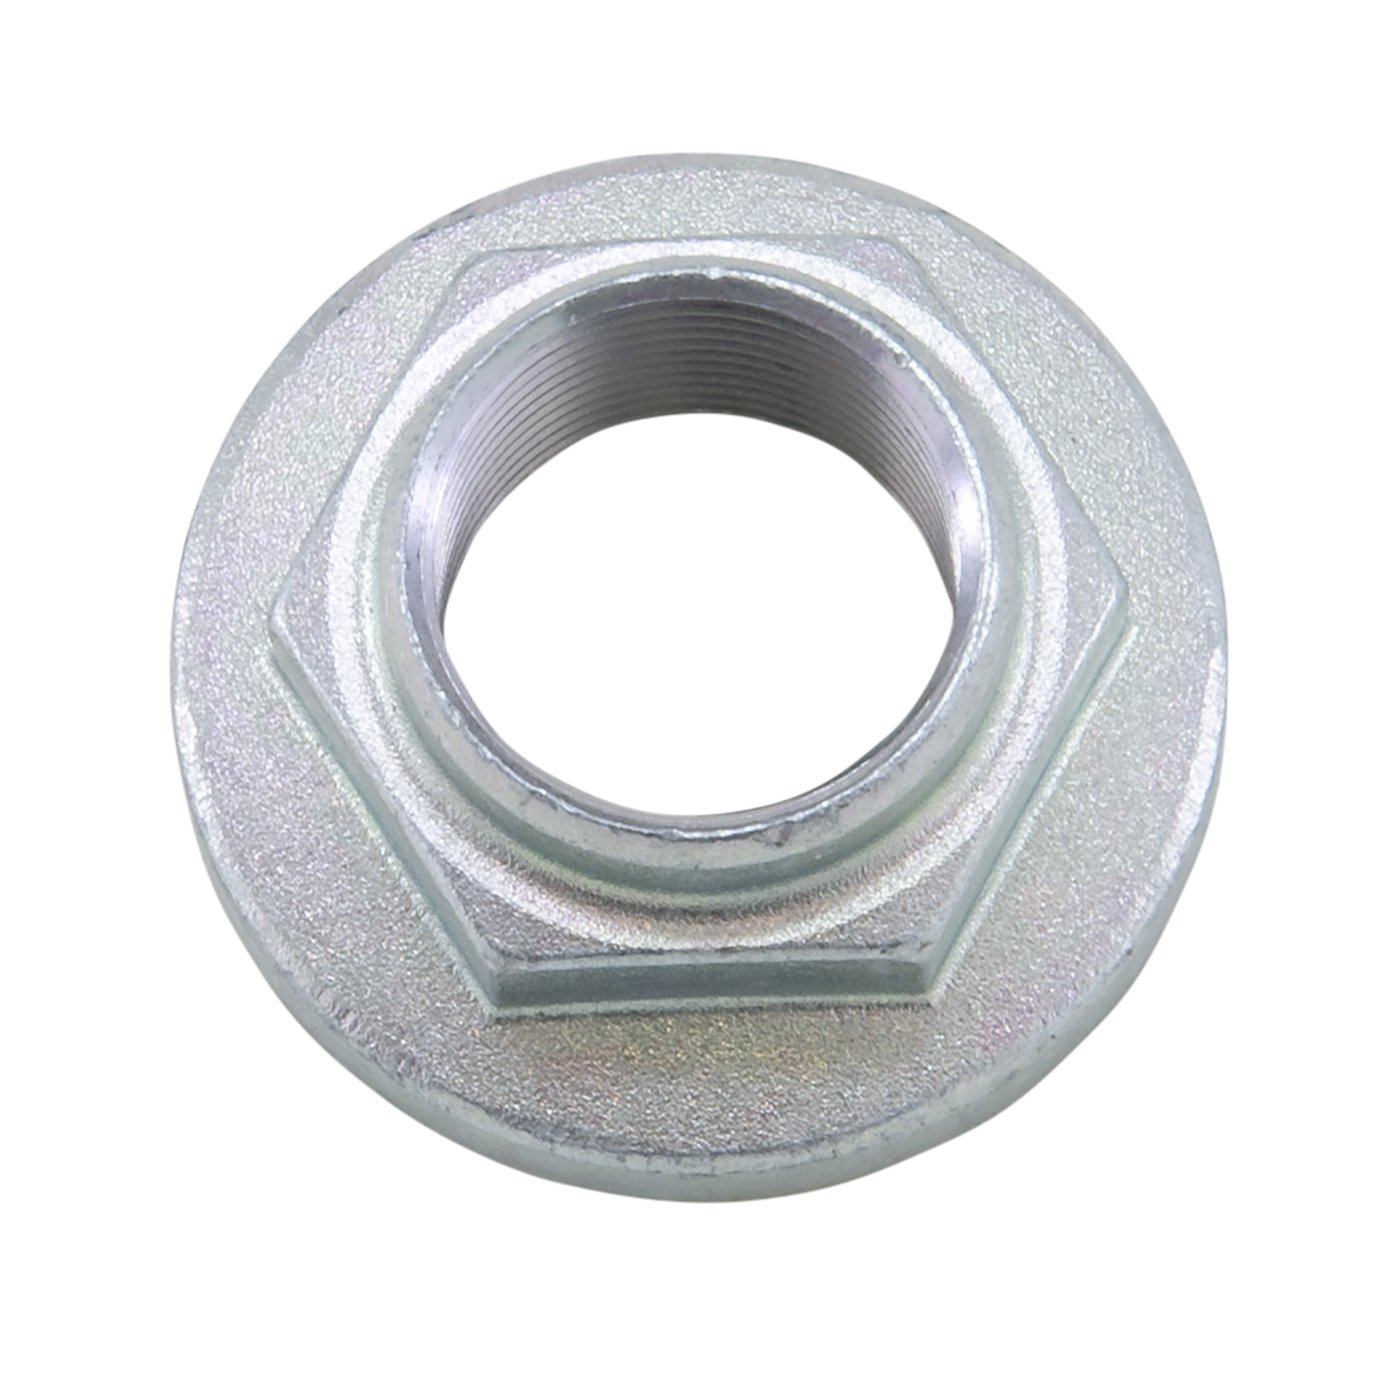 Yukon (YSPPN-025) Pinion Nut for Toyota Tundra Front Differential